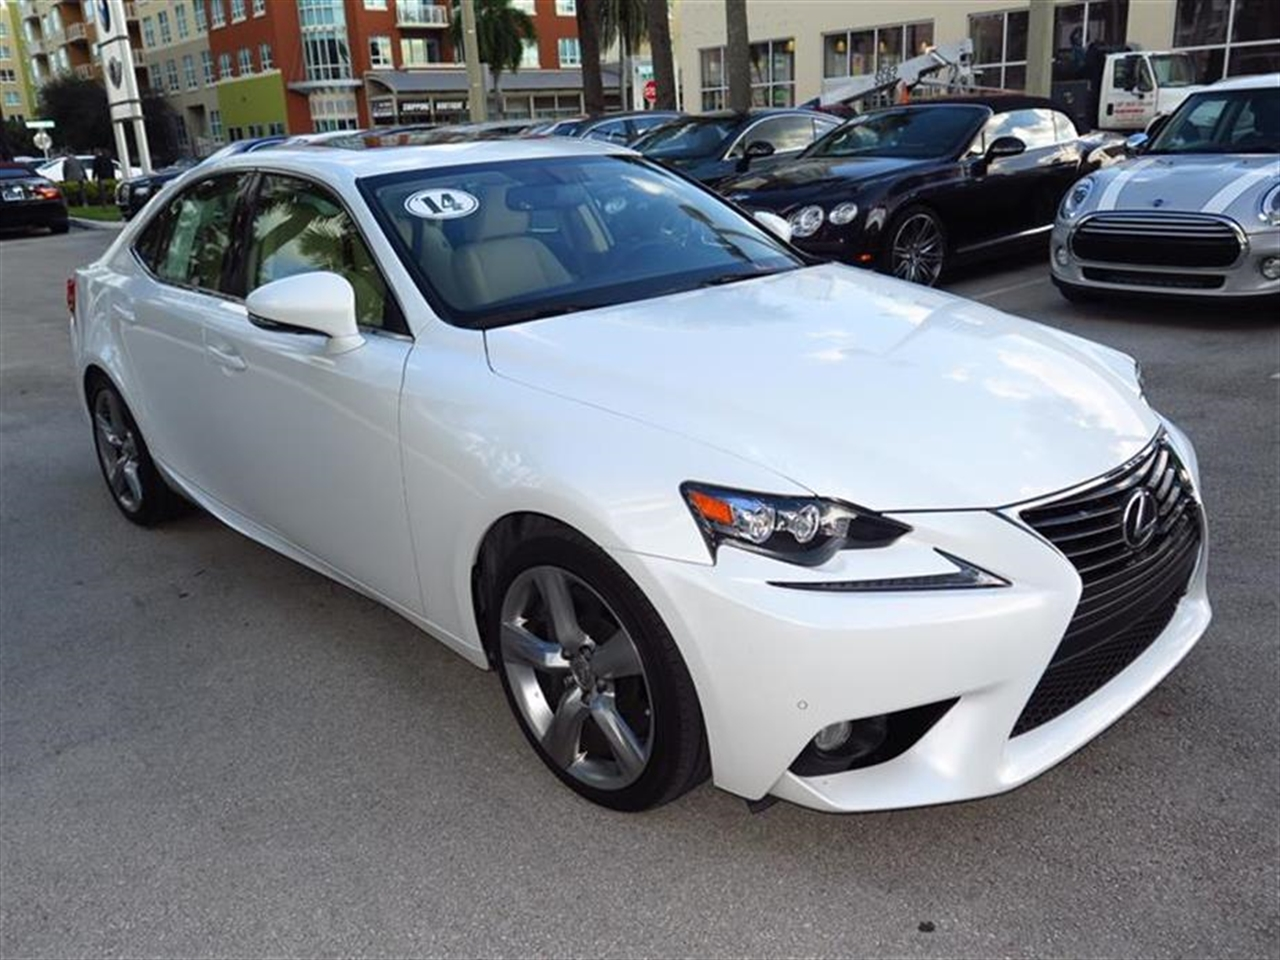 2014 LEXUS IS 4dr Sdn RWD 9028 miles 2 12V DC Power Outlets 2 Seatback Storage Pockets 5 Person